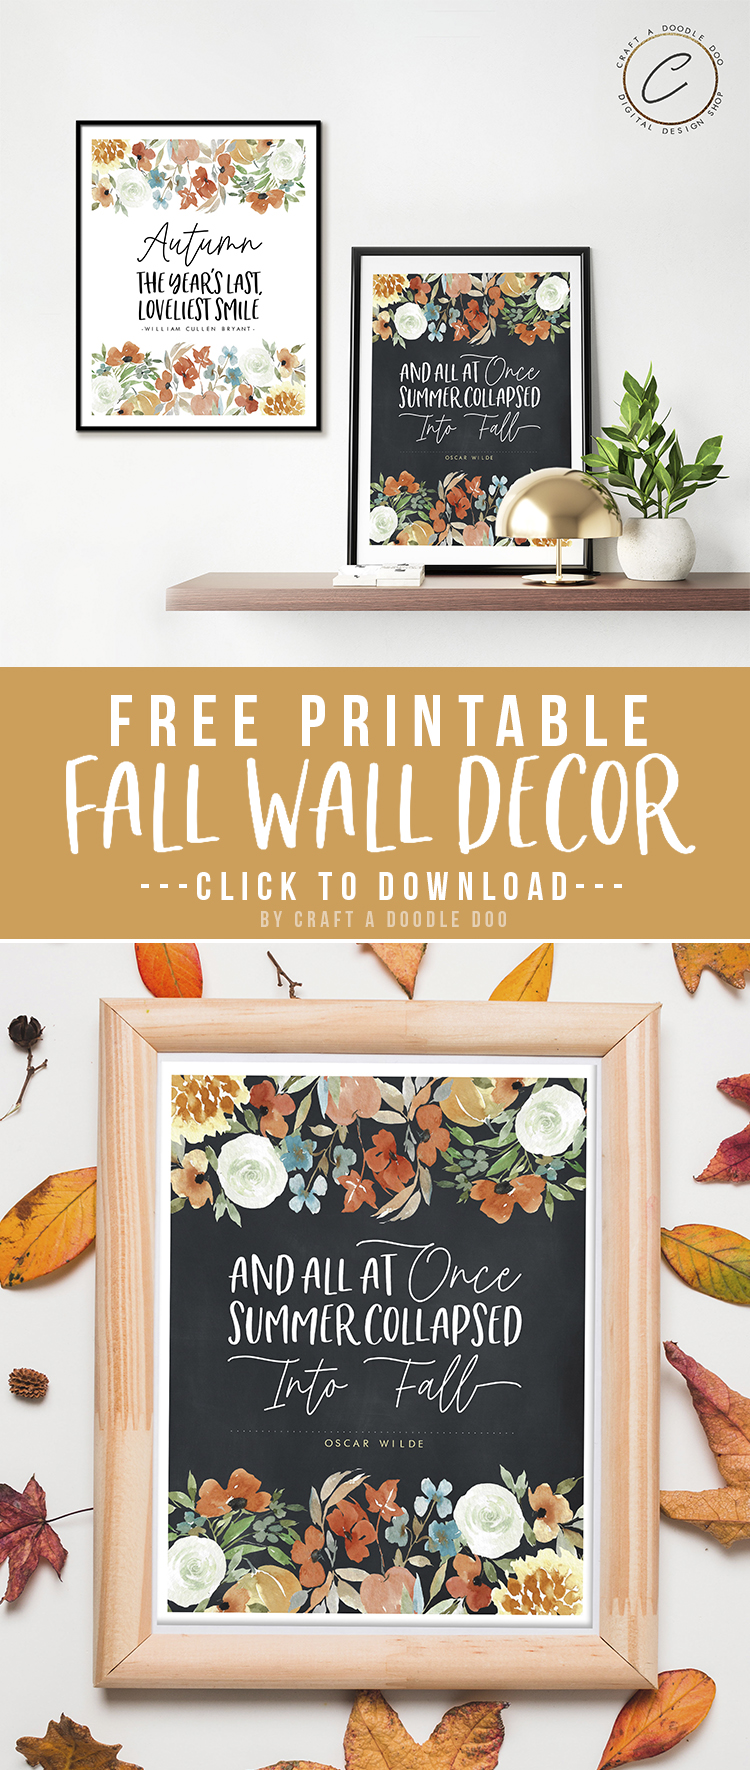 Free Fall Printable Wall Art Set | Watercolor Floral Farmhouse Style Autumn Digital Wall Decor by Craft A Doodle Doo #freefallprintablesbundle #freeautumnwallart #freefallwallgallery